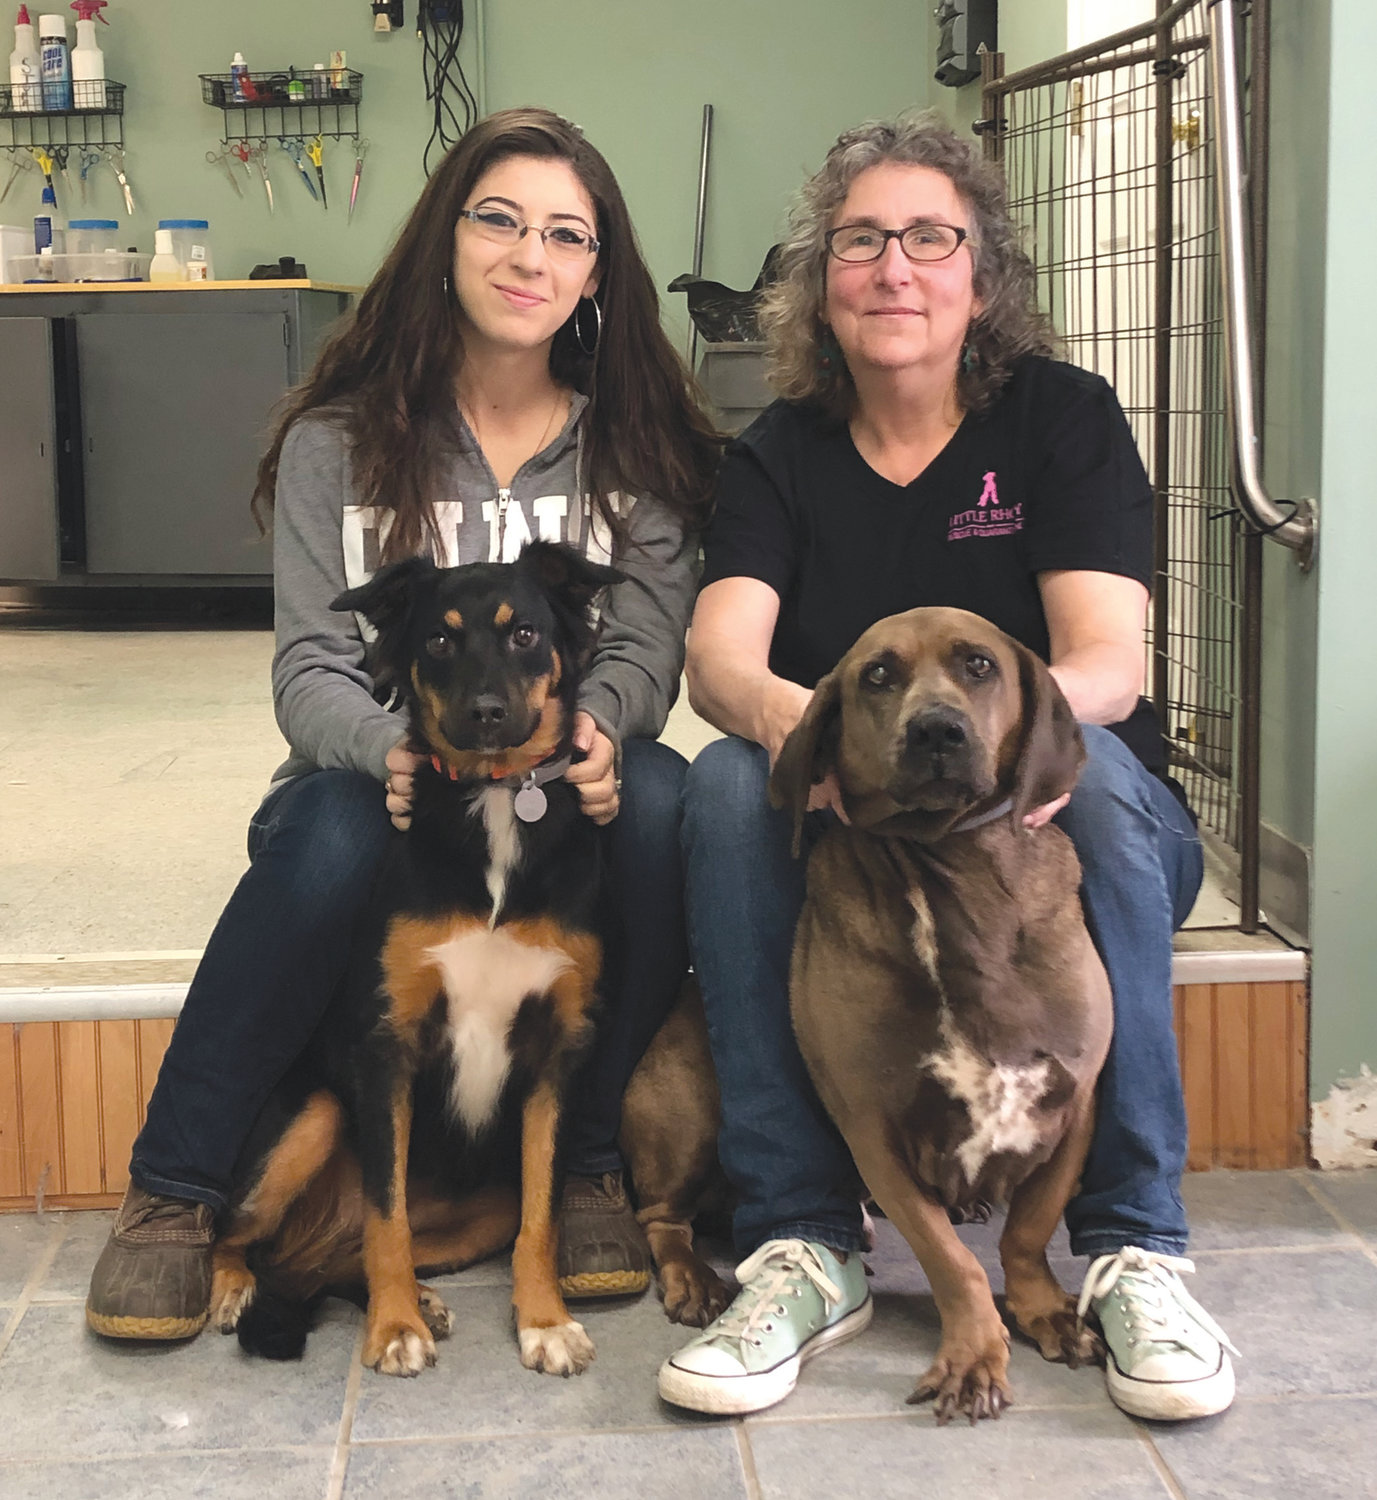 ALL HANDS (AND PAWS) ON DECK: All 4 Paws owners Mary Kathryn Kent and Jules Martins, posing here with Harley and Basset hound cross Booker, said business has been solid since opening in January.